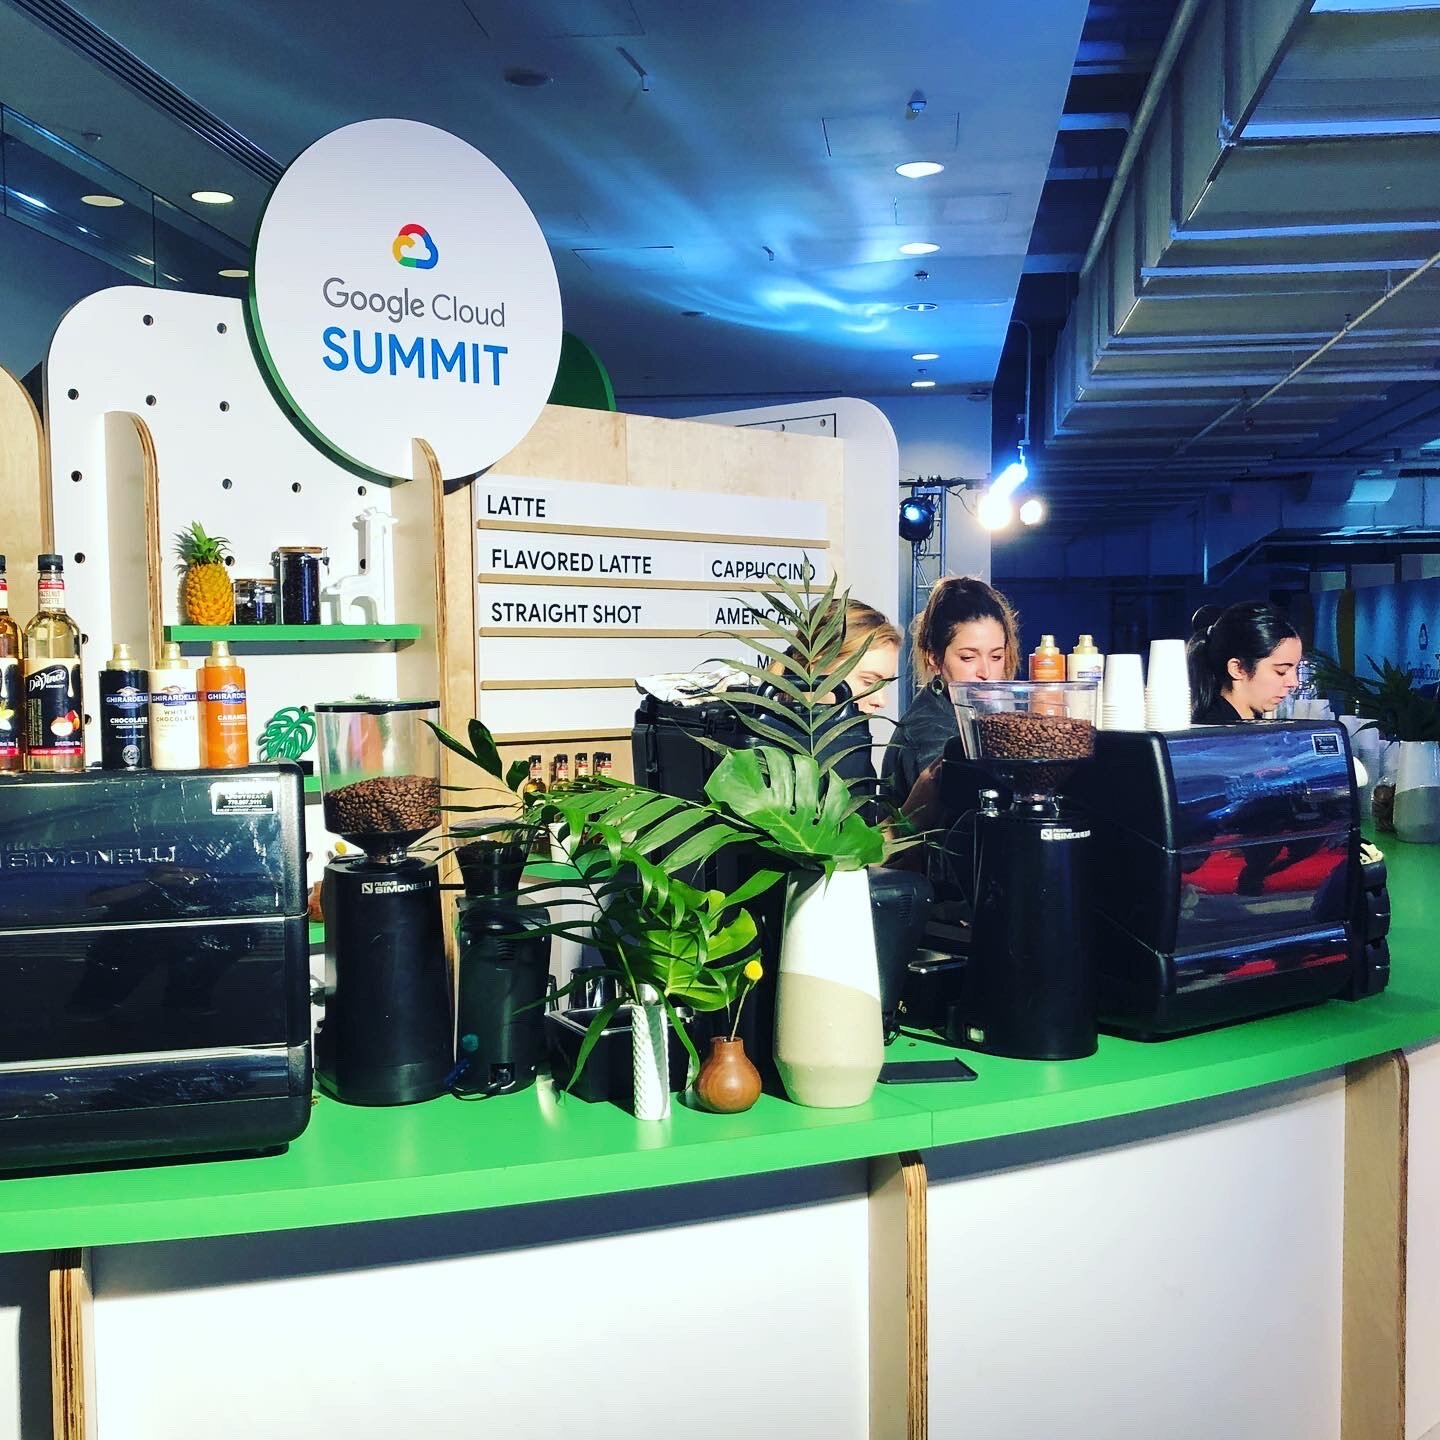 Fully Branded Build-Outs and Coffee Bars! The Perfect Solution To Impress Your Clients at Your Next Trade Show!